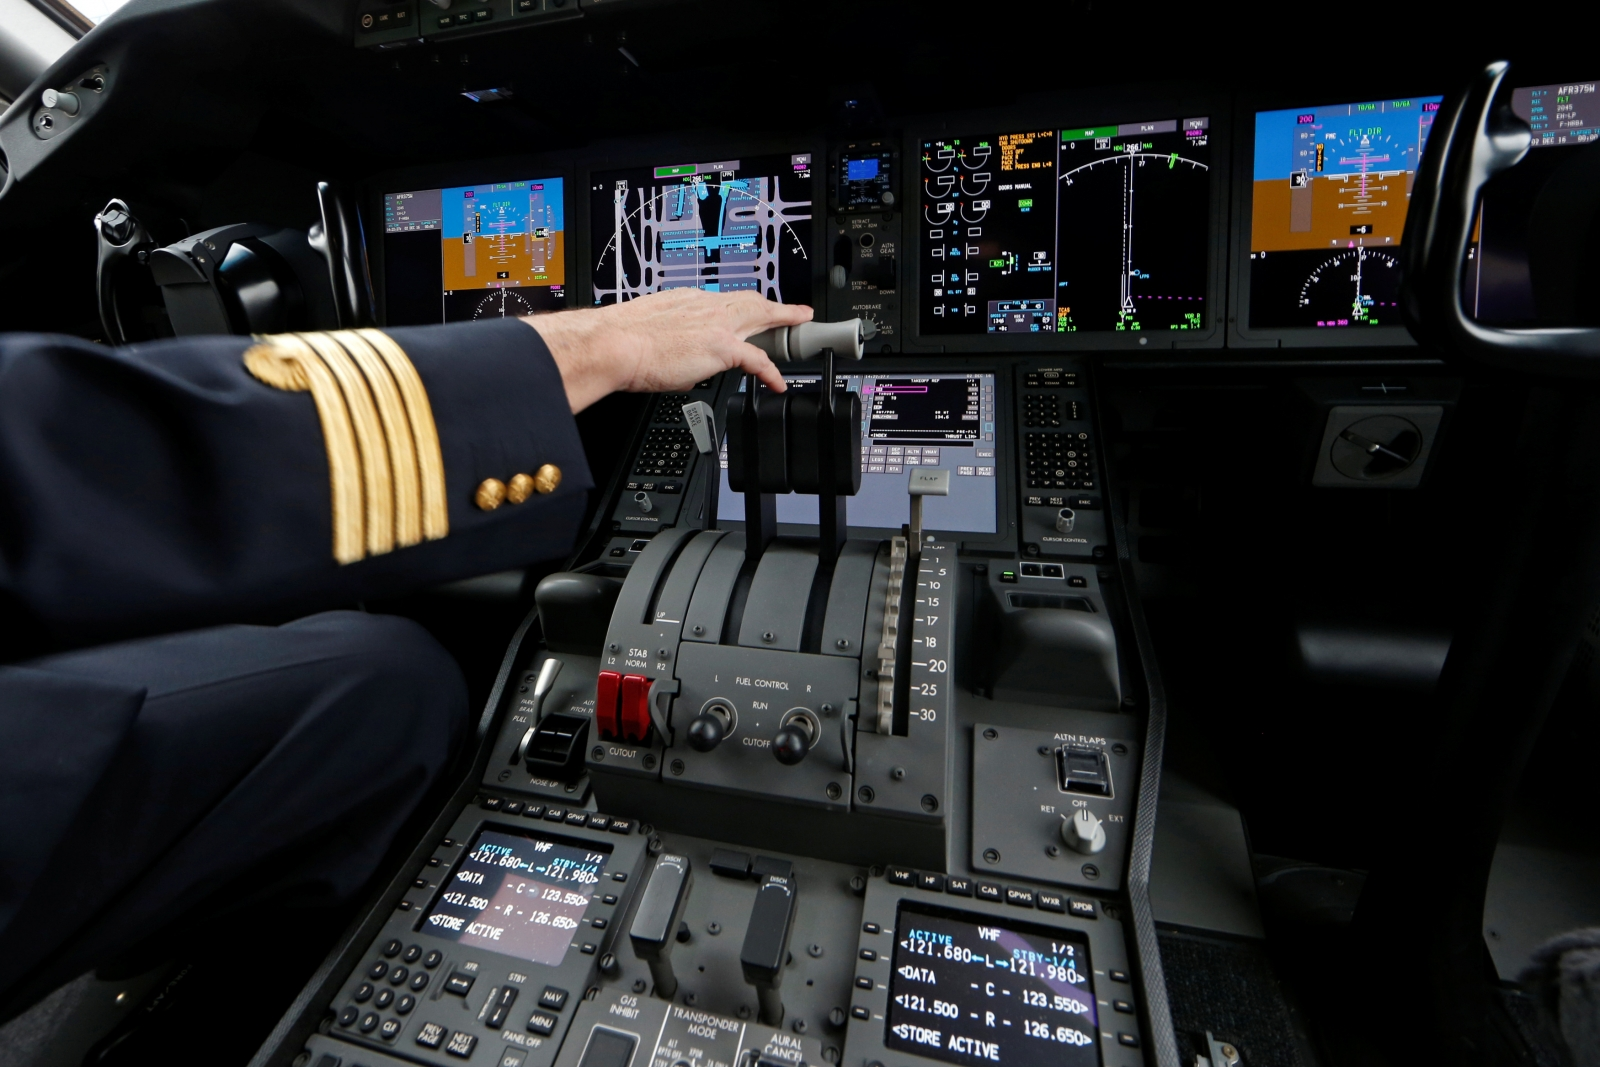 Cockpit of a Boeing 787-9 Dreamliner jet